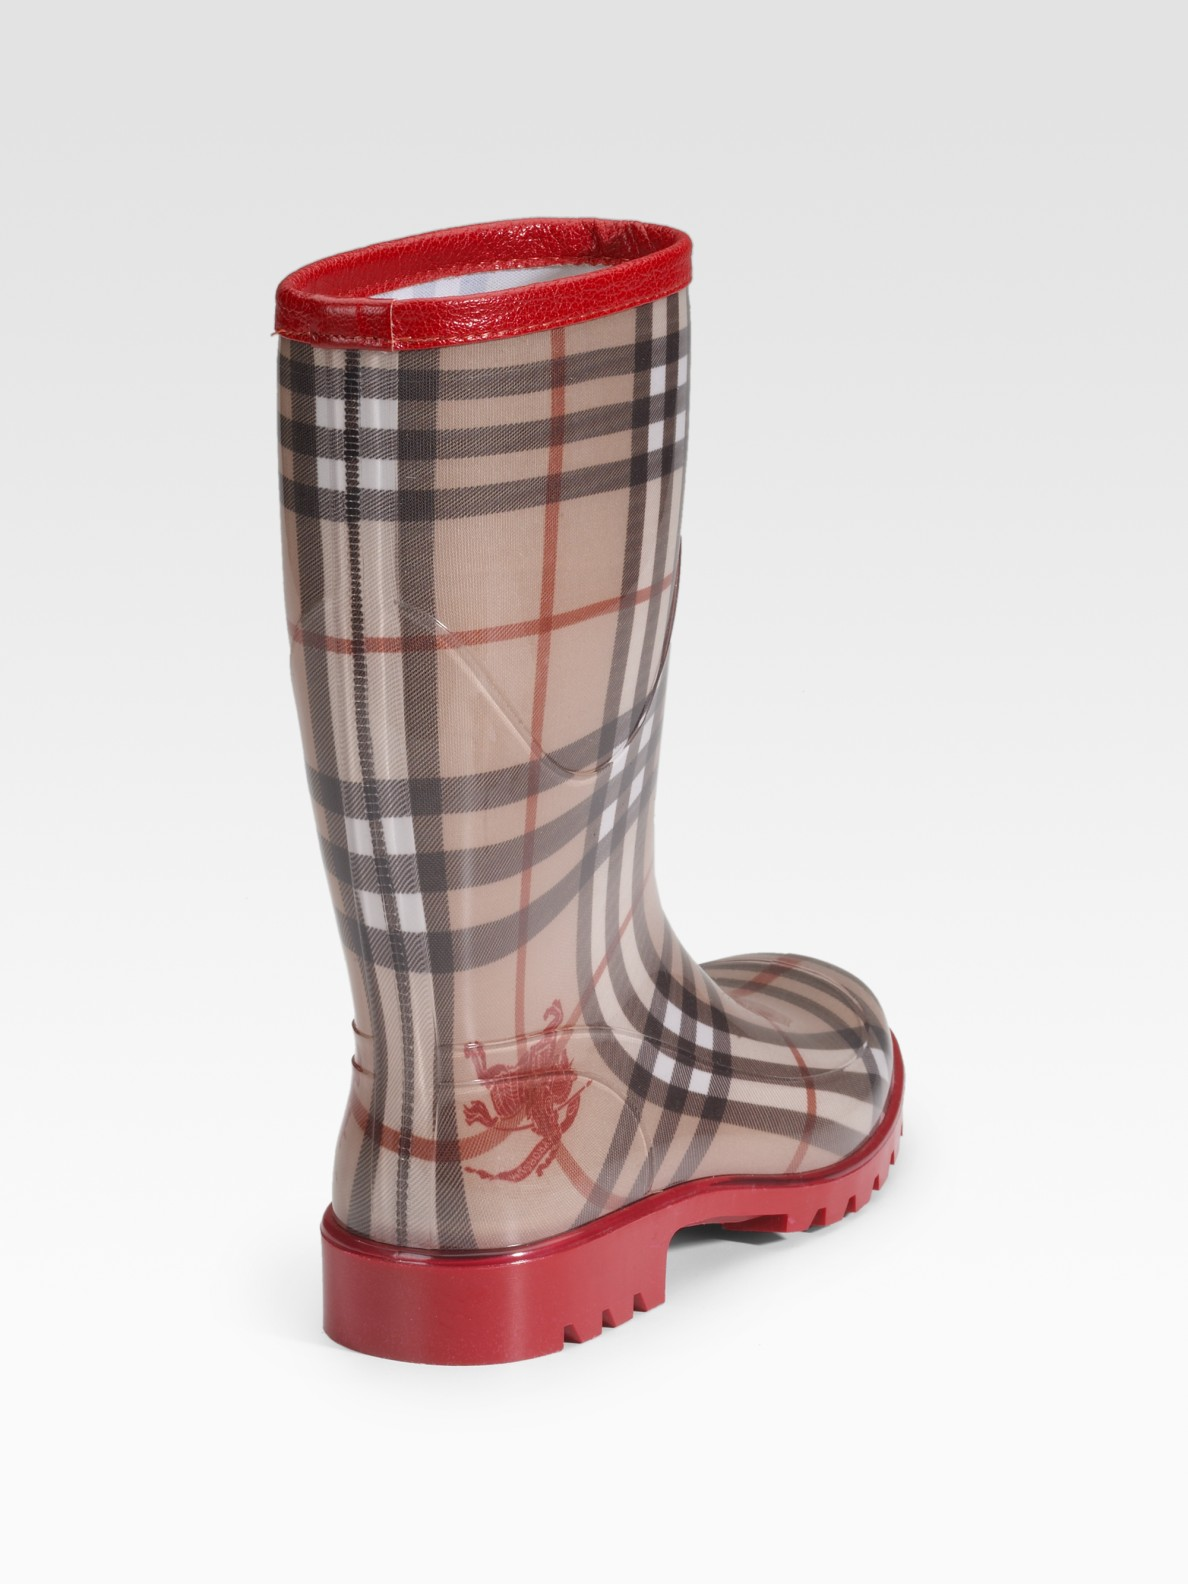 9fc25b45e3f8 Lyst - Burberry Rubber Rain Boots in Red